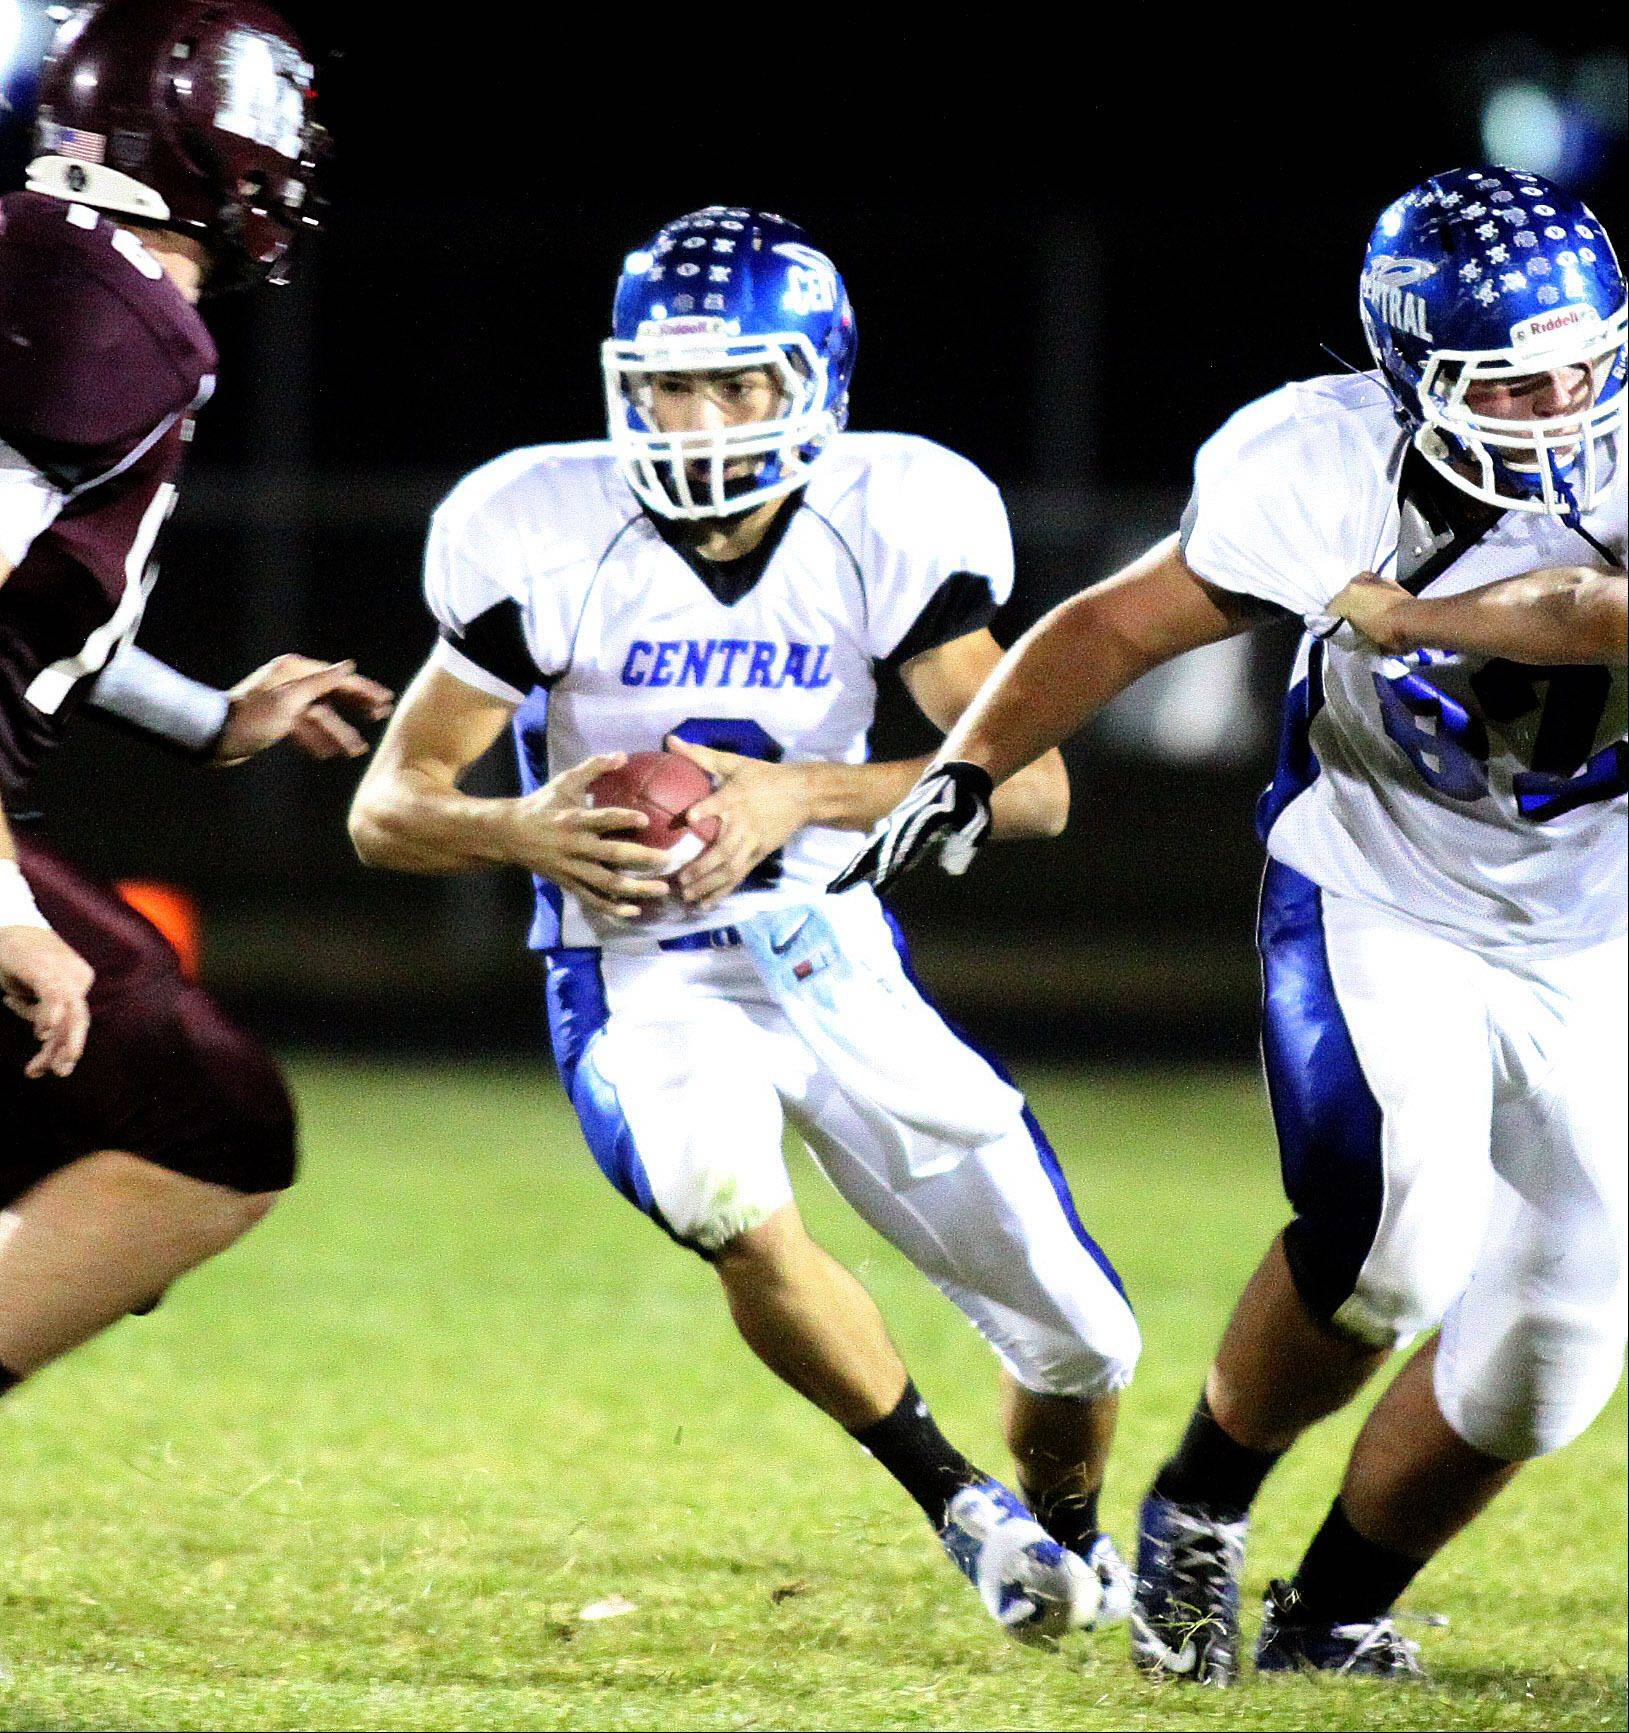 Burlington Central's quarterback Tyler Majewski moves with the ball during a varsity football game at Rod Poppe Field in Marengo on Friday night.